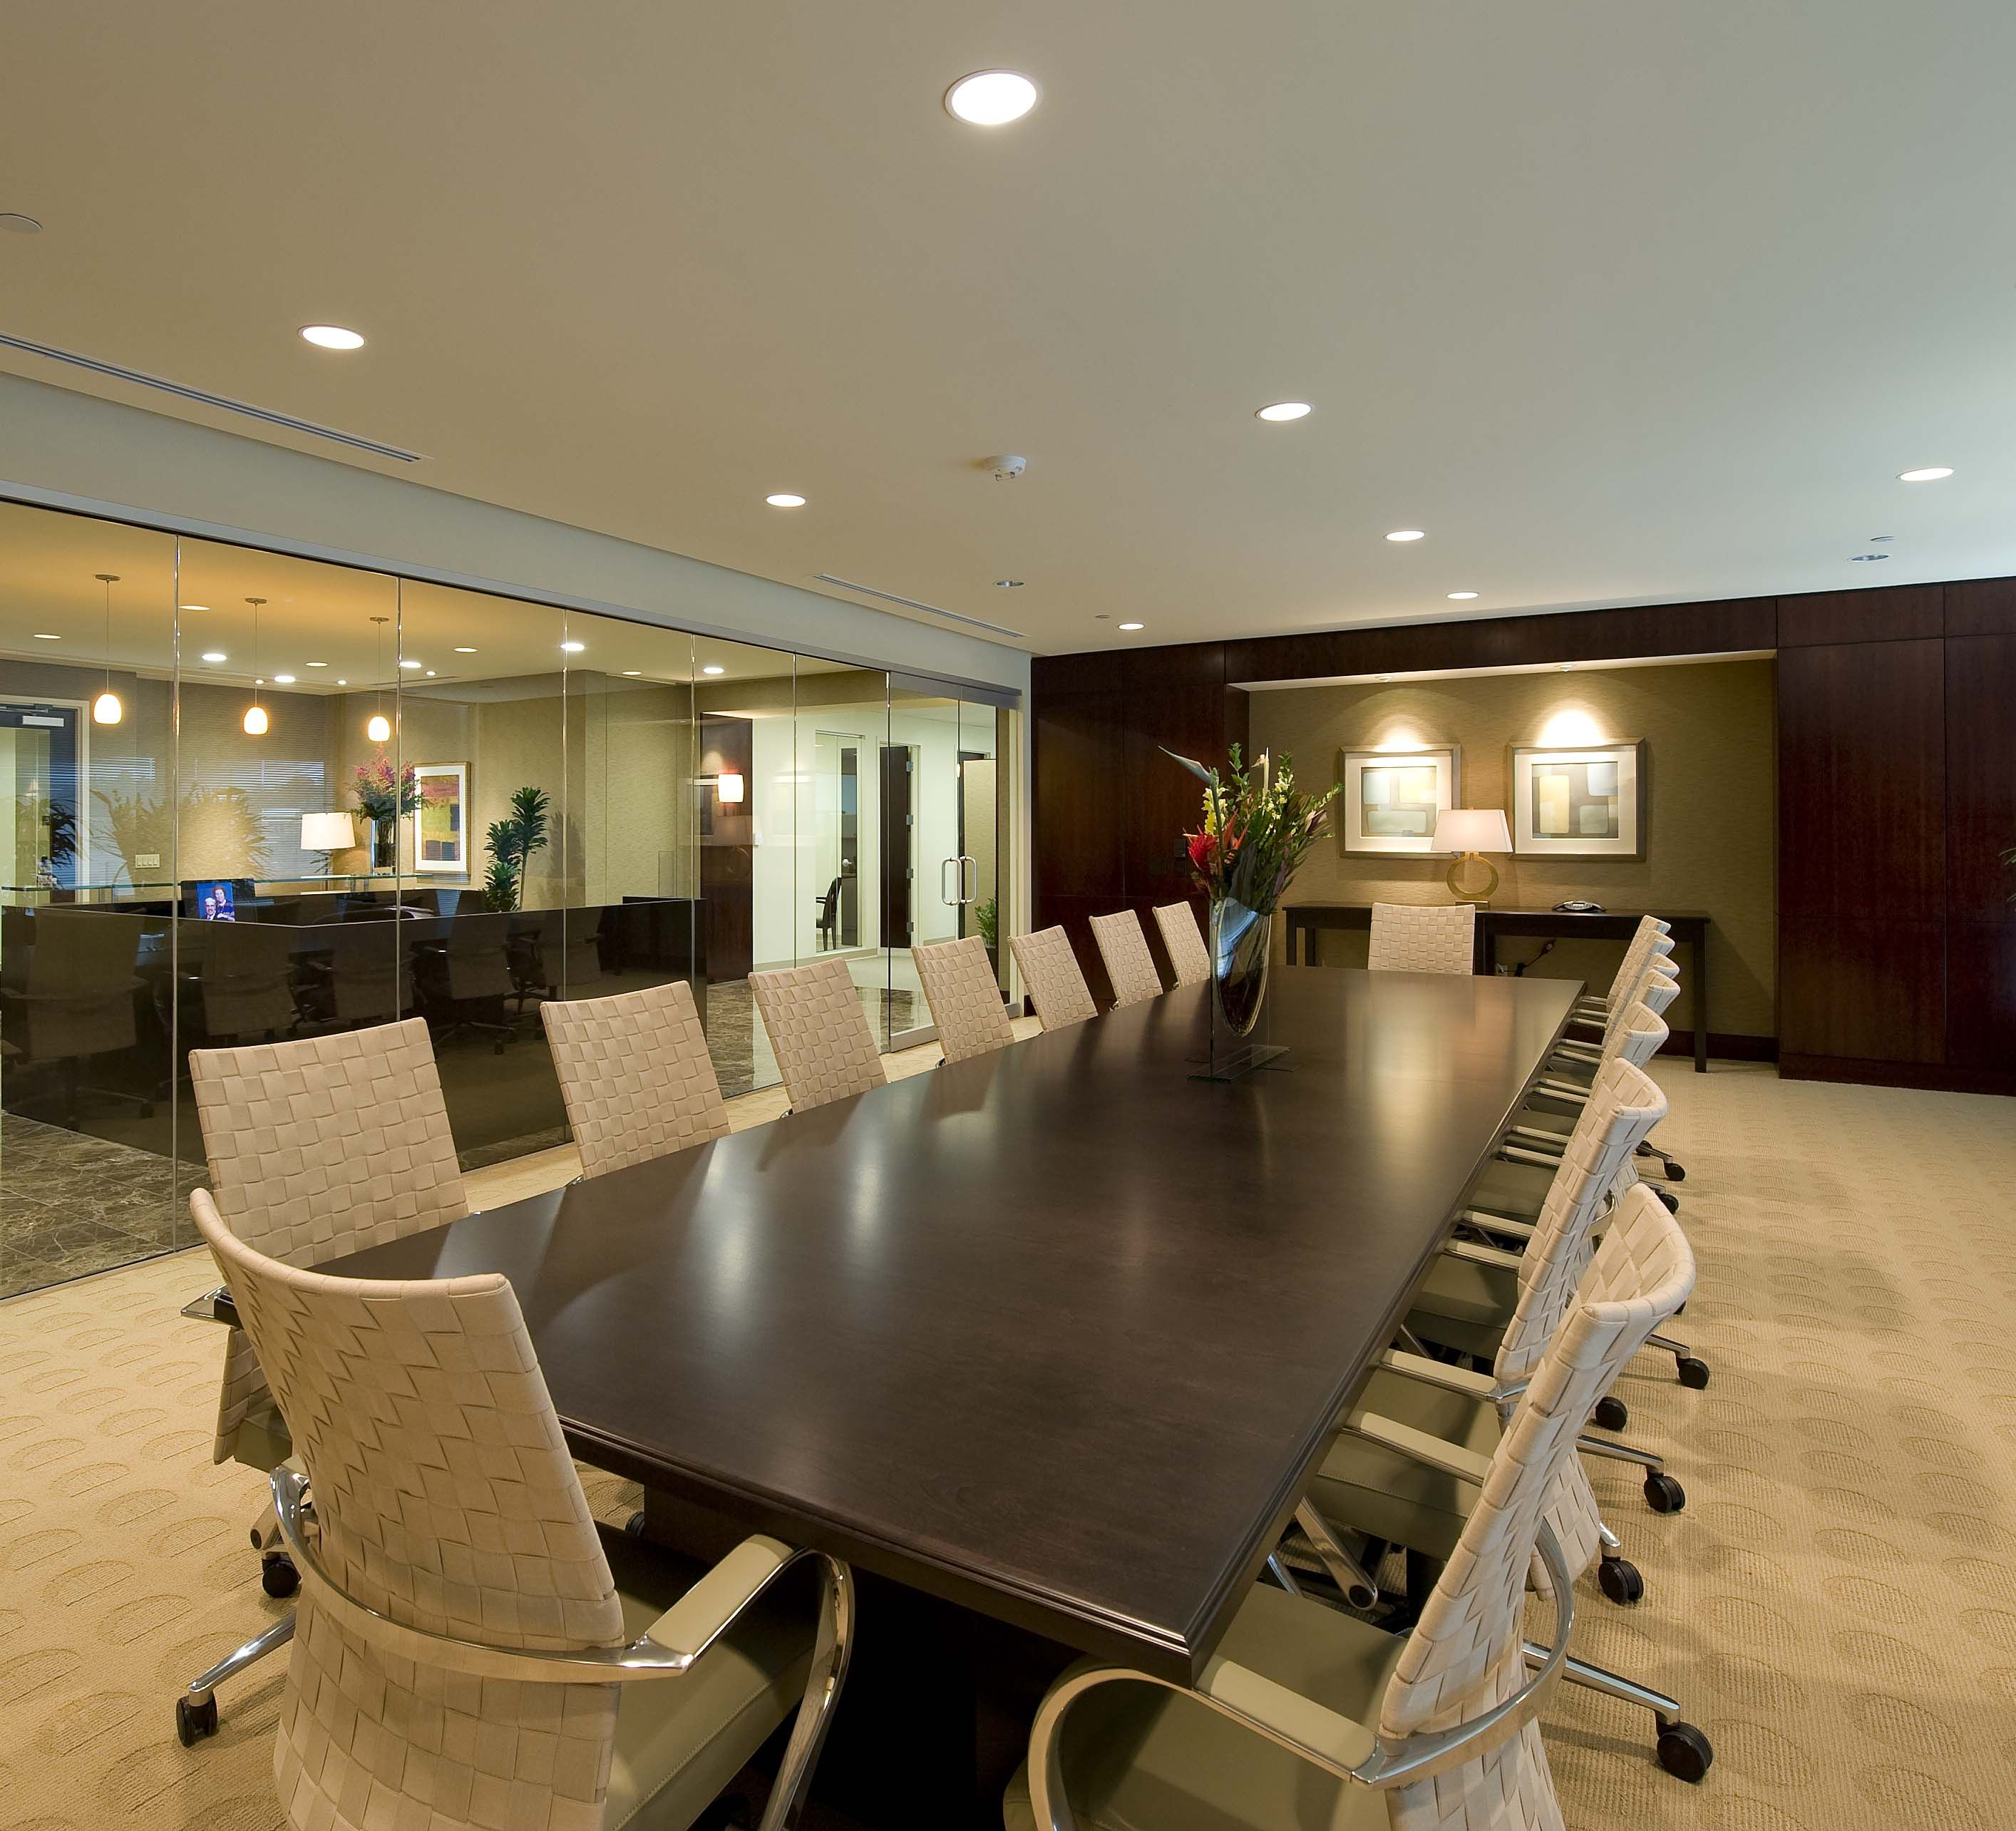 conference rooms | Executive Conference Room | Conference Rooms ...